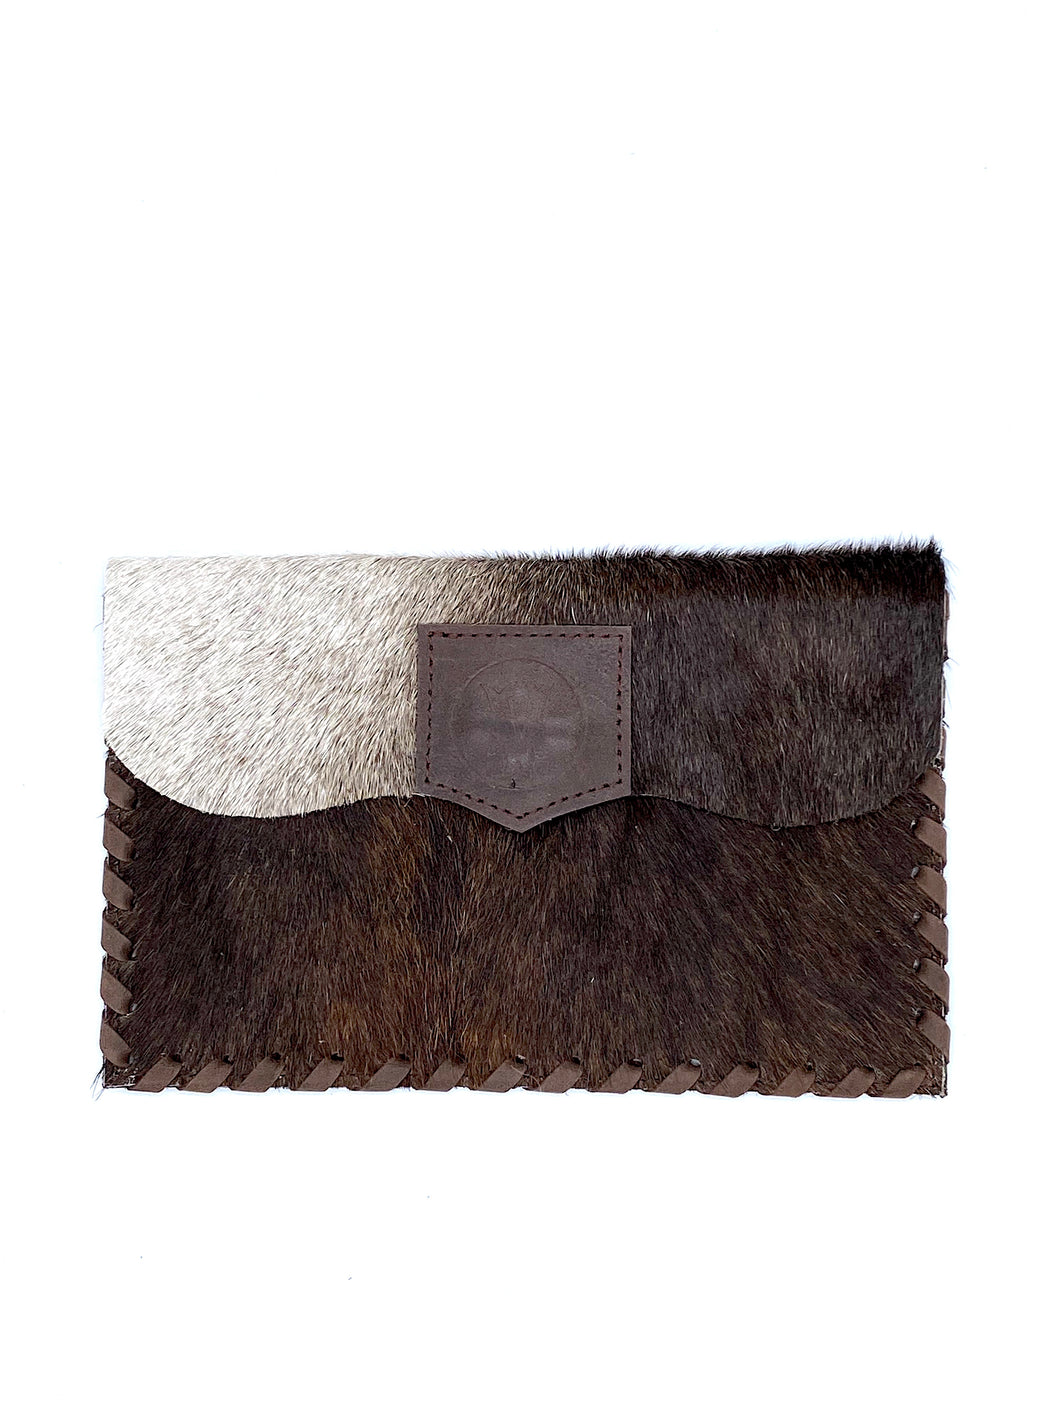 Olympia Envelope Clutch - Siembra Heritage